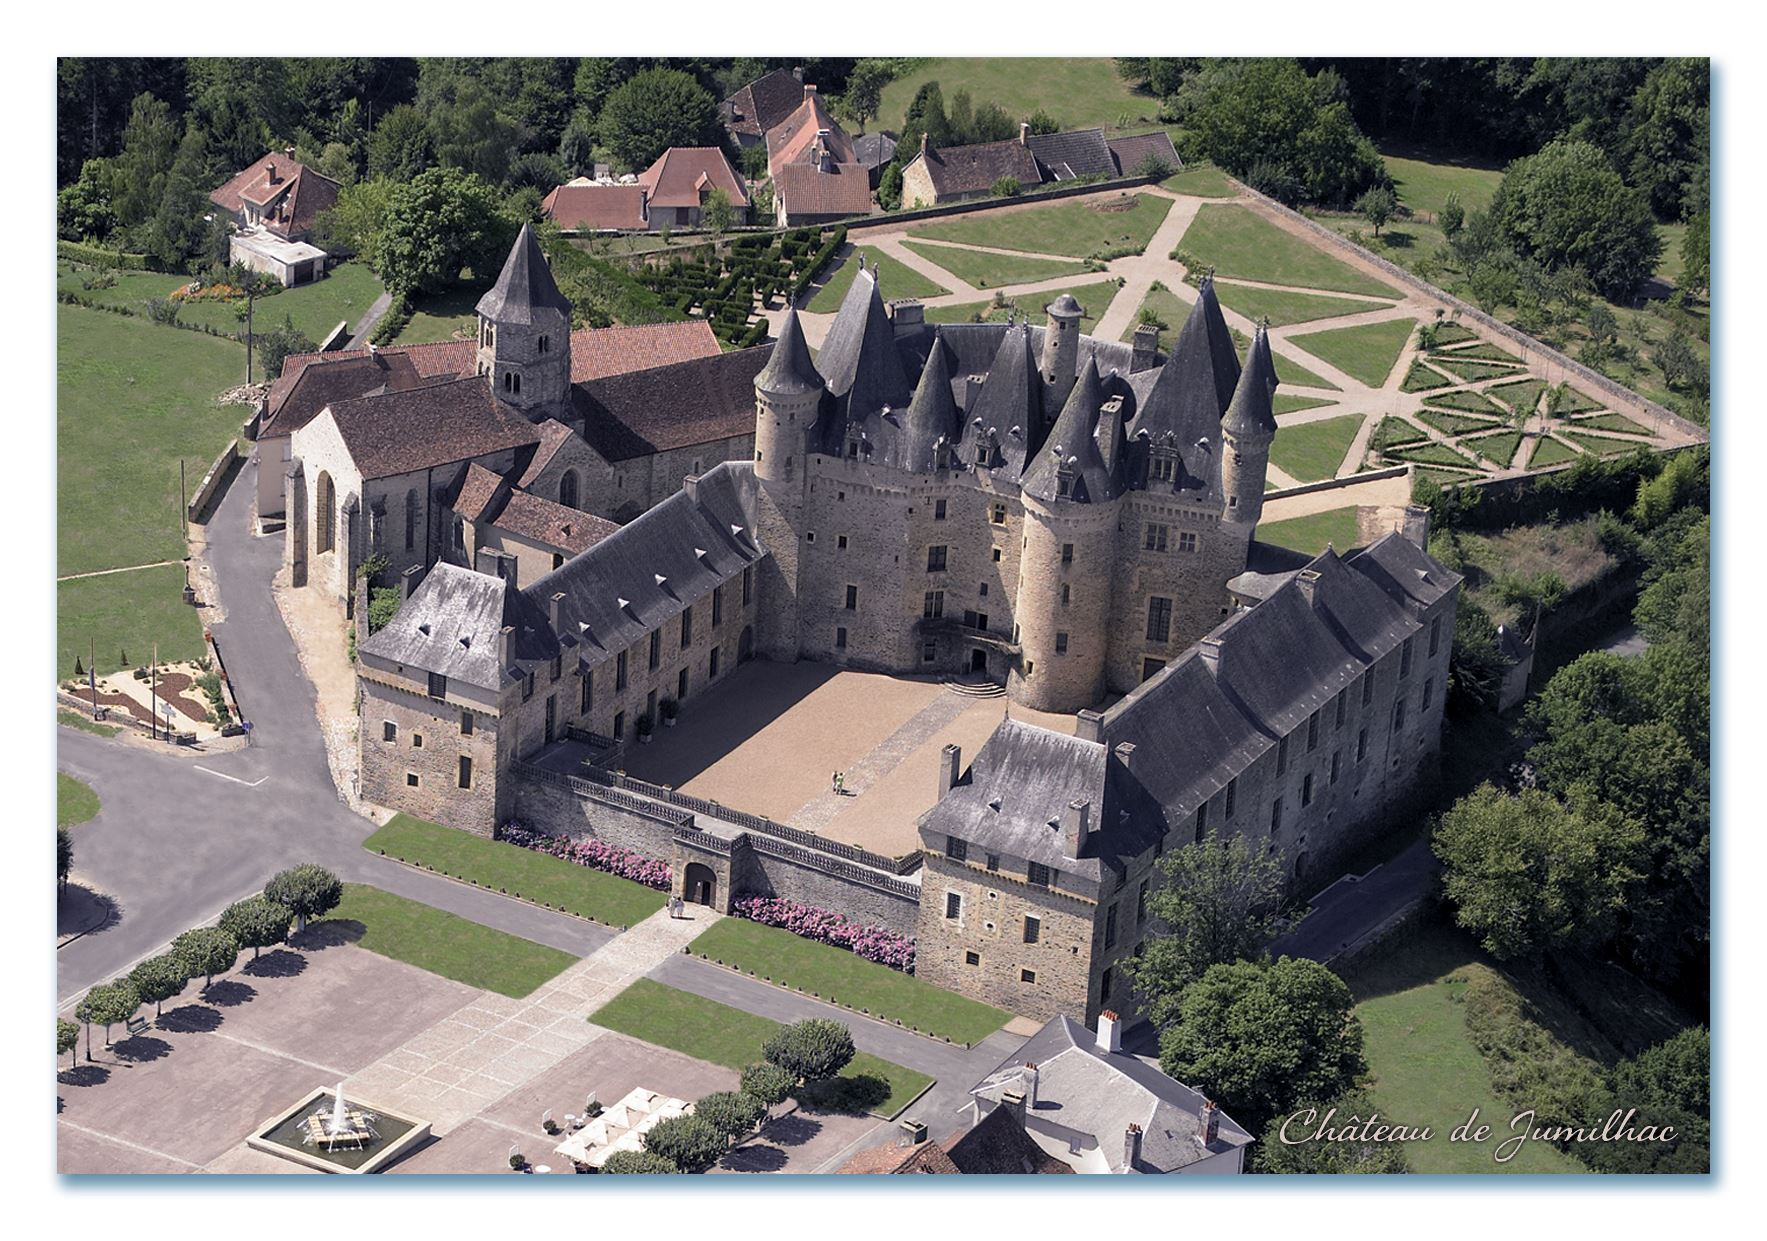 A bird's eye view from château Jumilhac